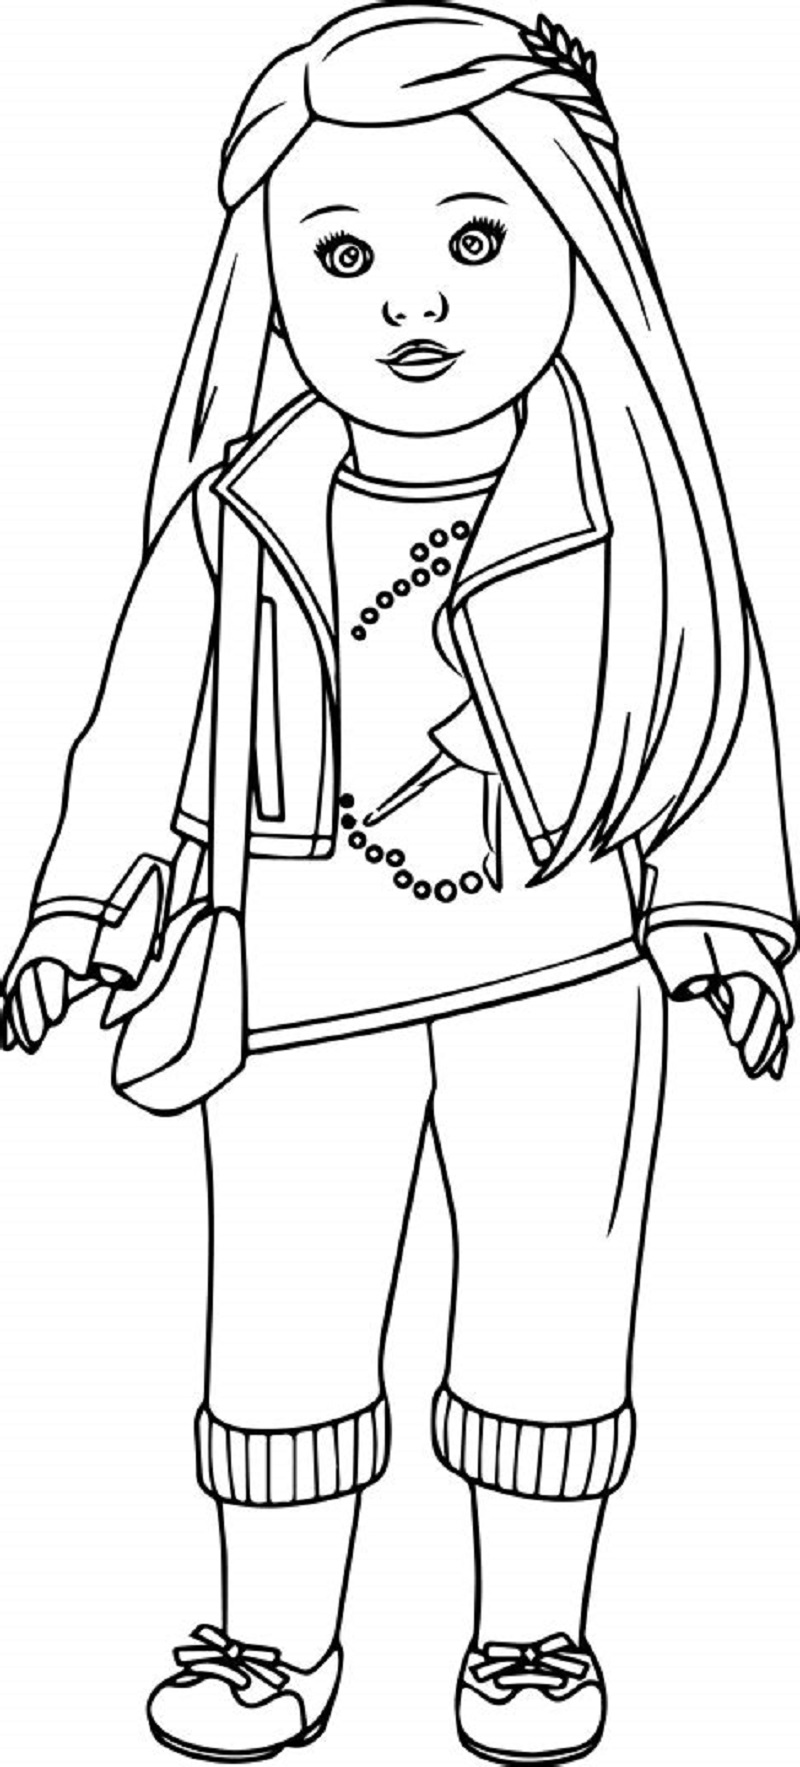 pictures of american girl dolls to color coloring pages of american girl dolls coloring pages for american of girl to pictures color dolls